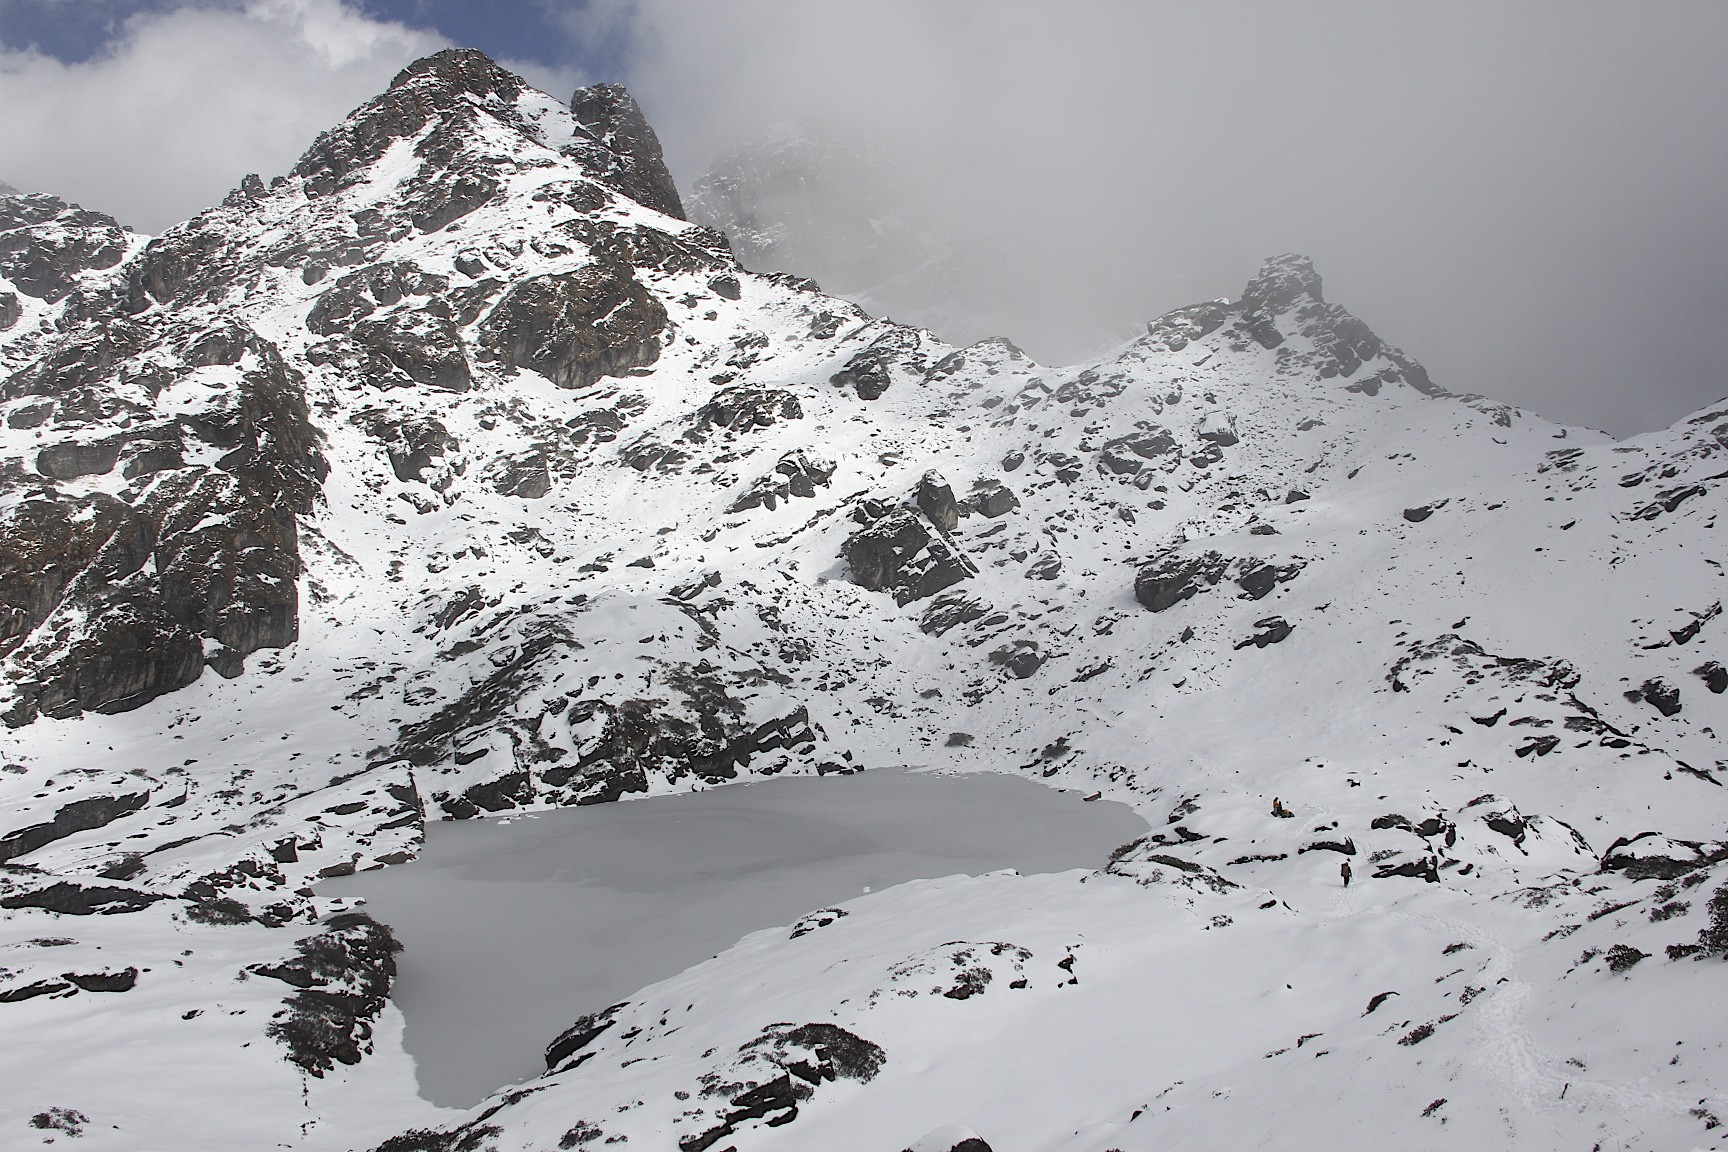 High pass (over 4,000m) in very cold wind and snow just before the Barun River Valley